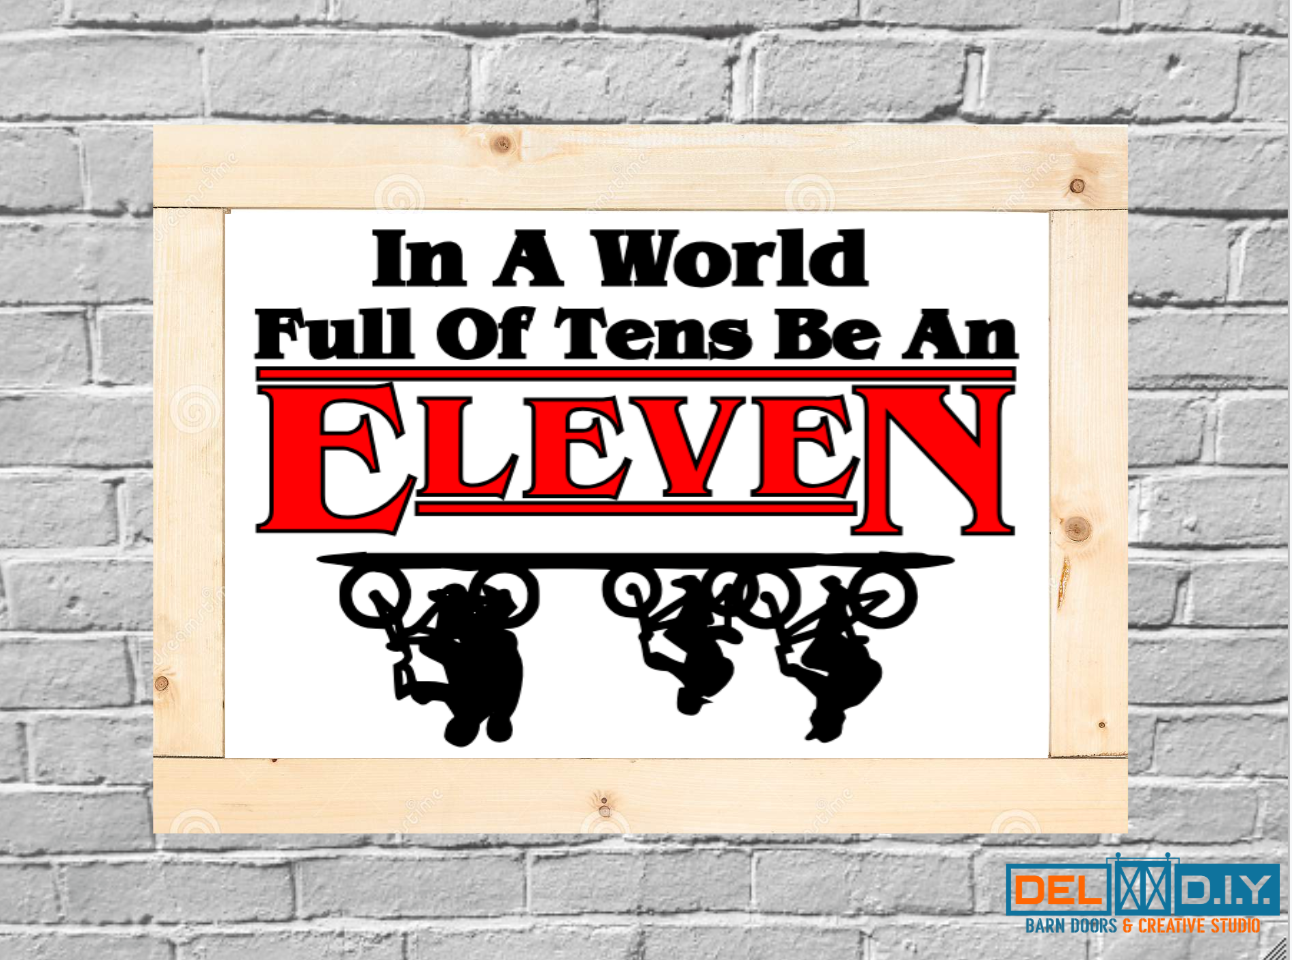 In a World Full of Tens be an Eleven